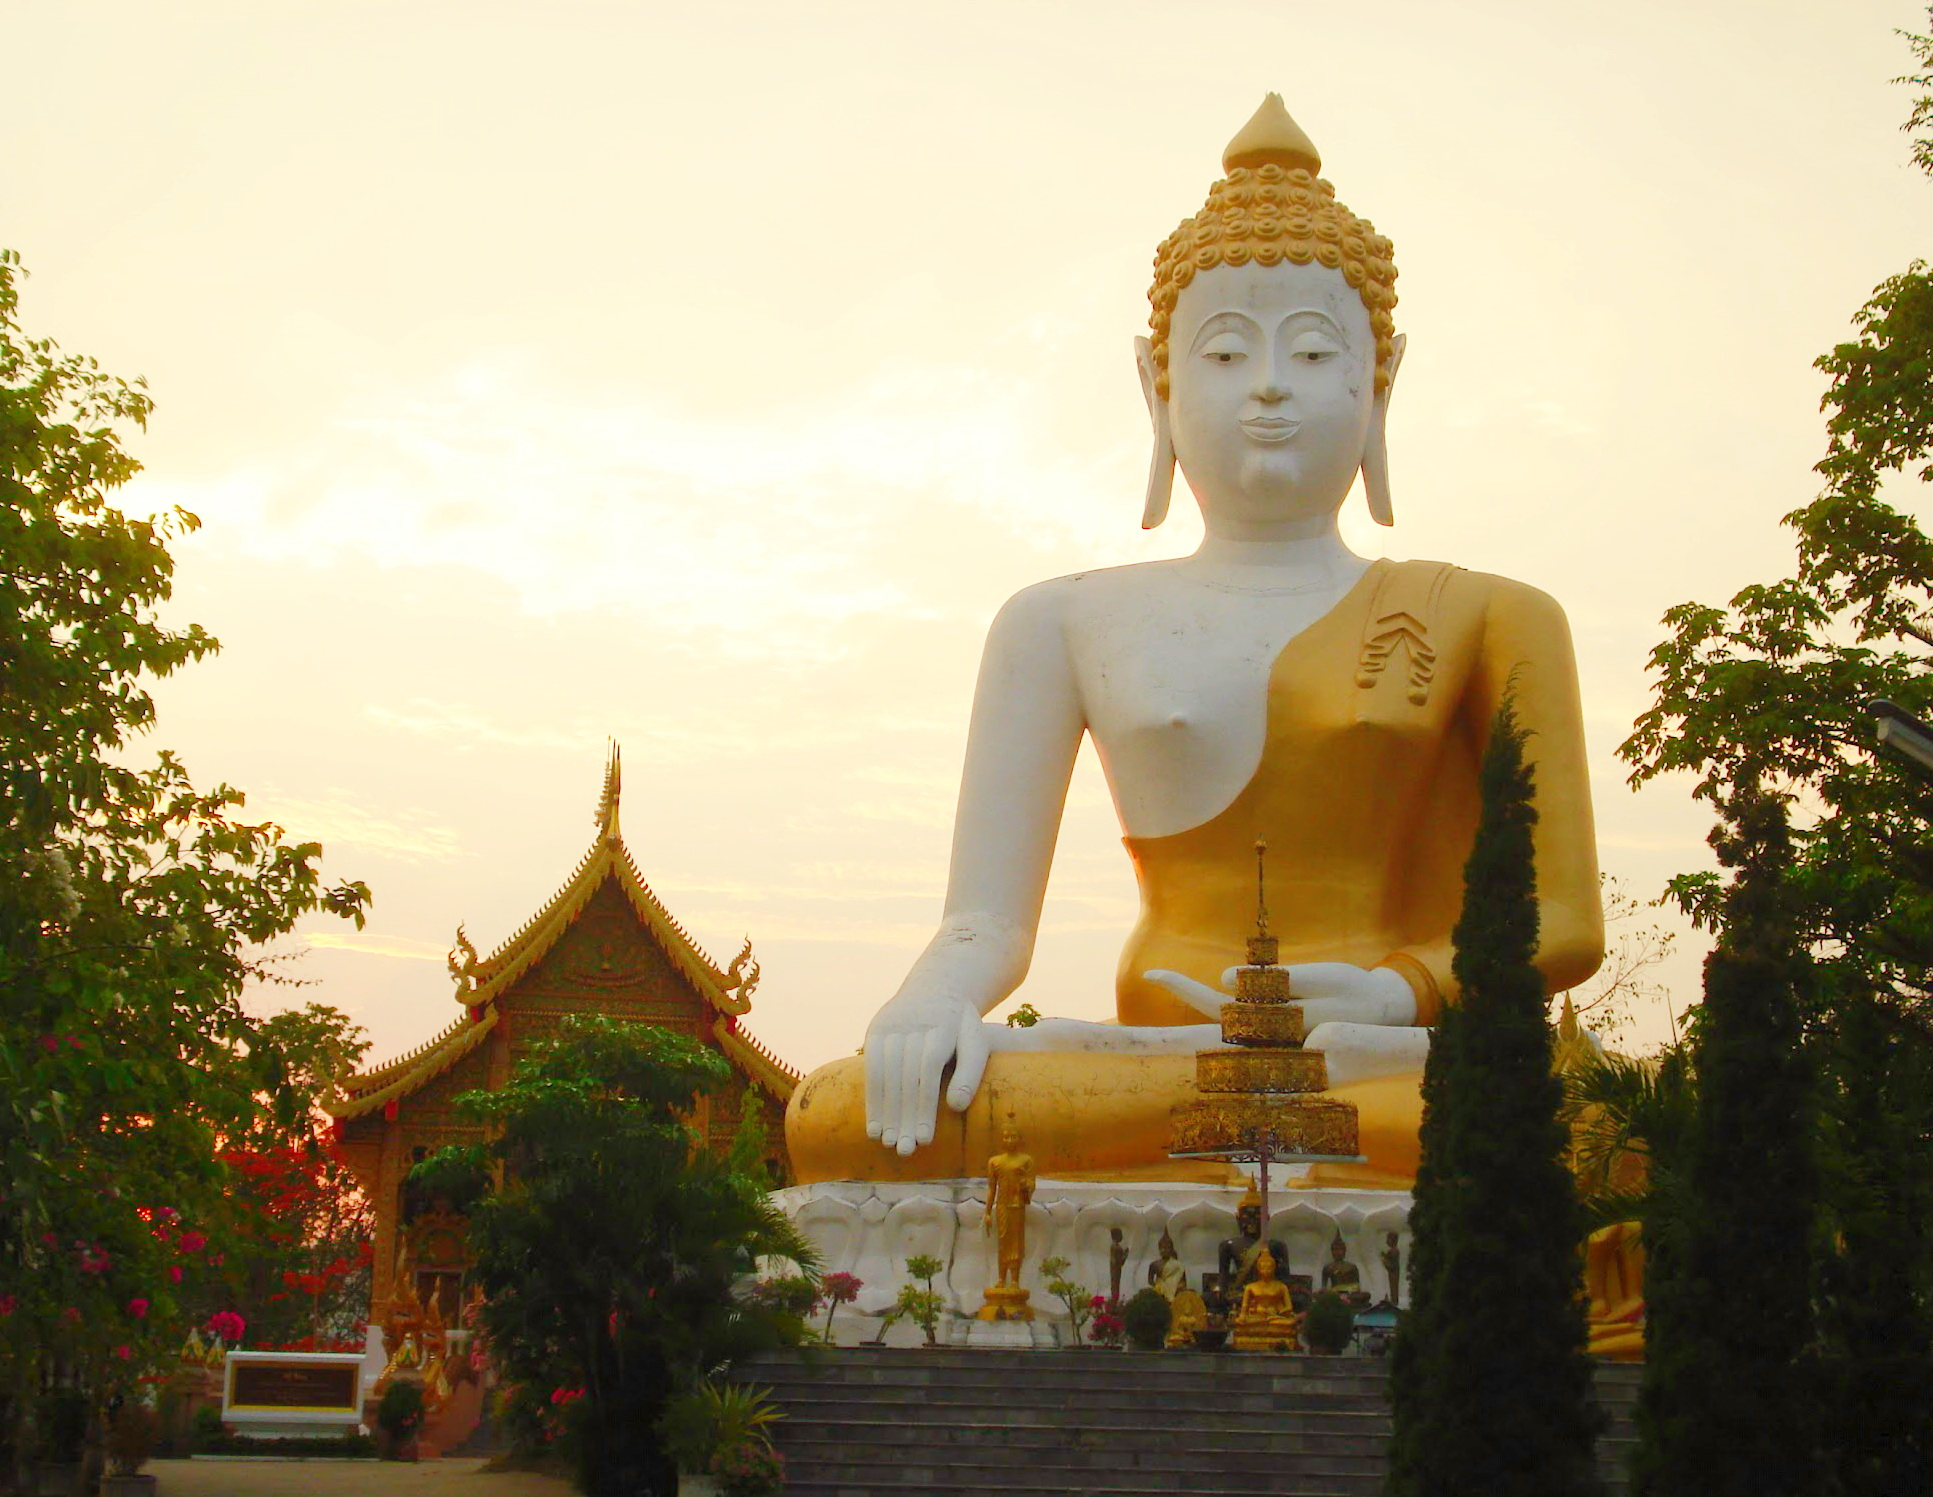 A non-touristy thing to do in Chiang Mai